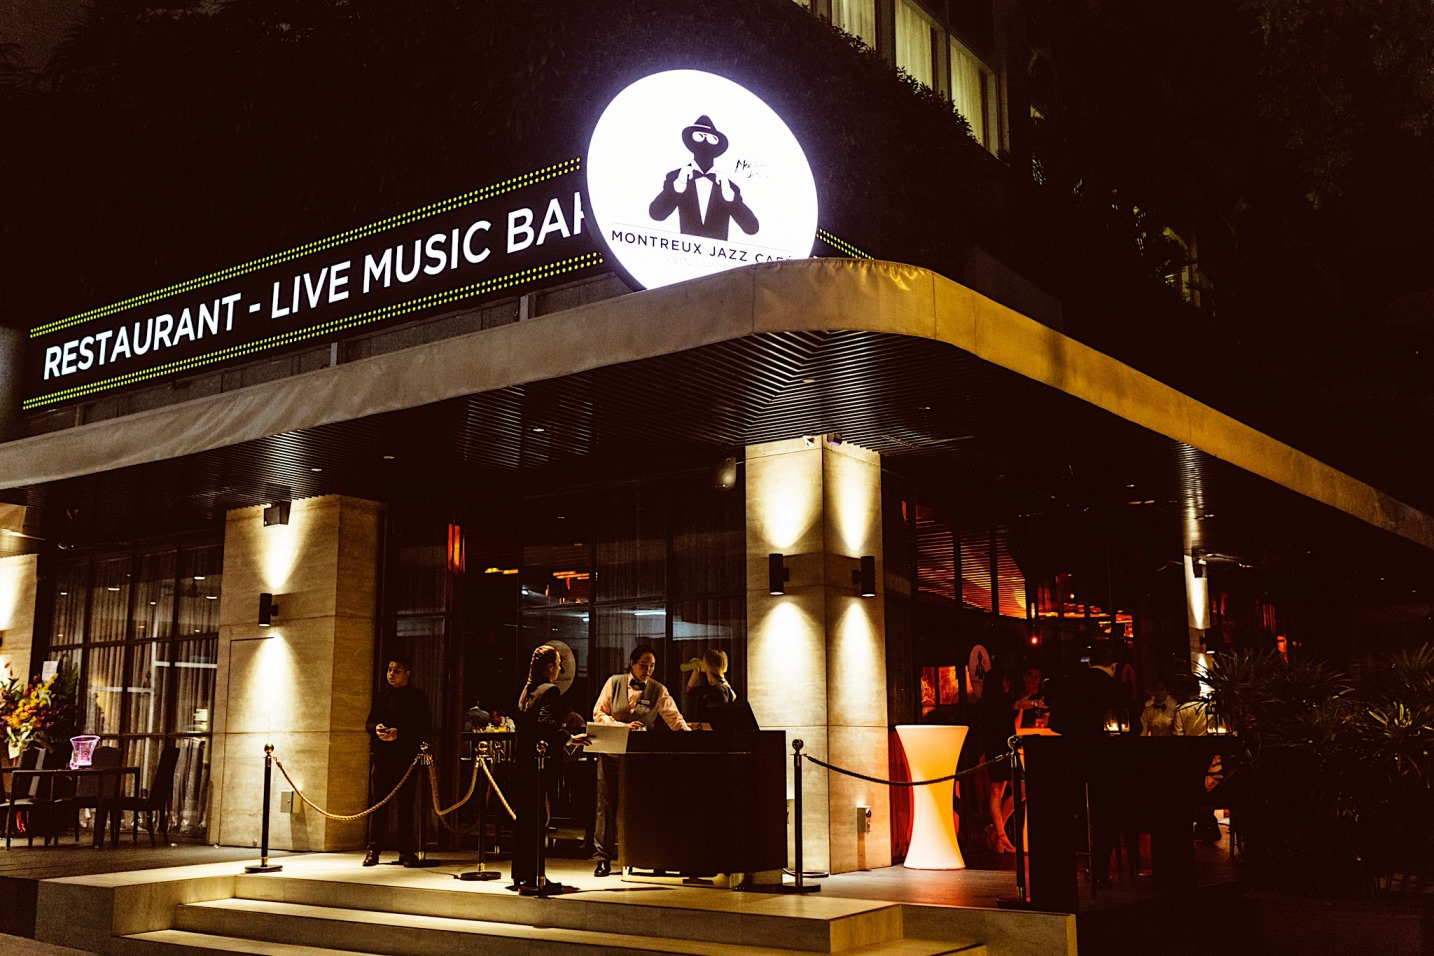 Montreux Jazz Cafe - Jazzin' up your Wednesday hump days!